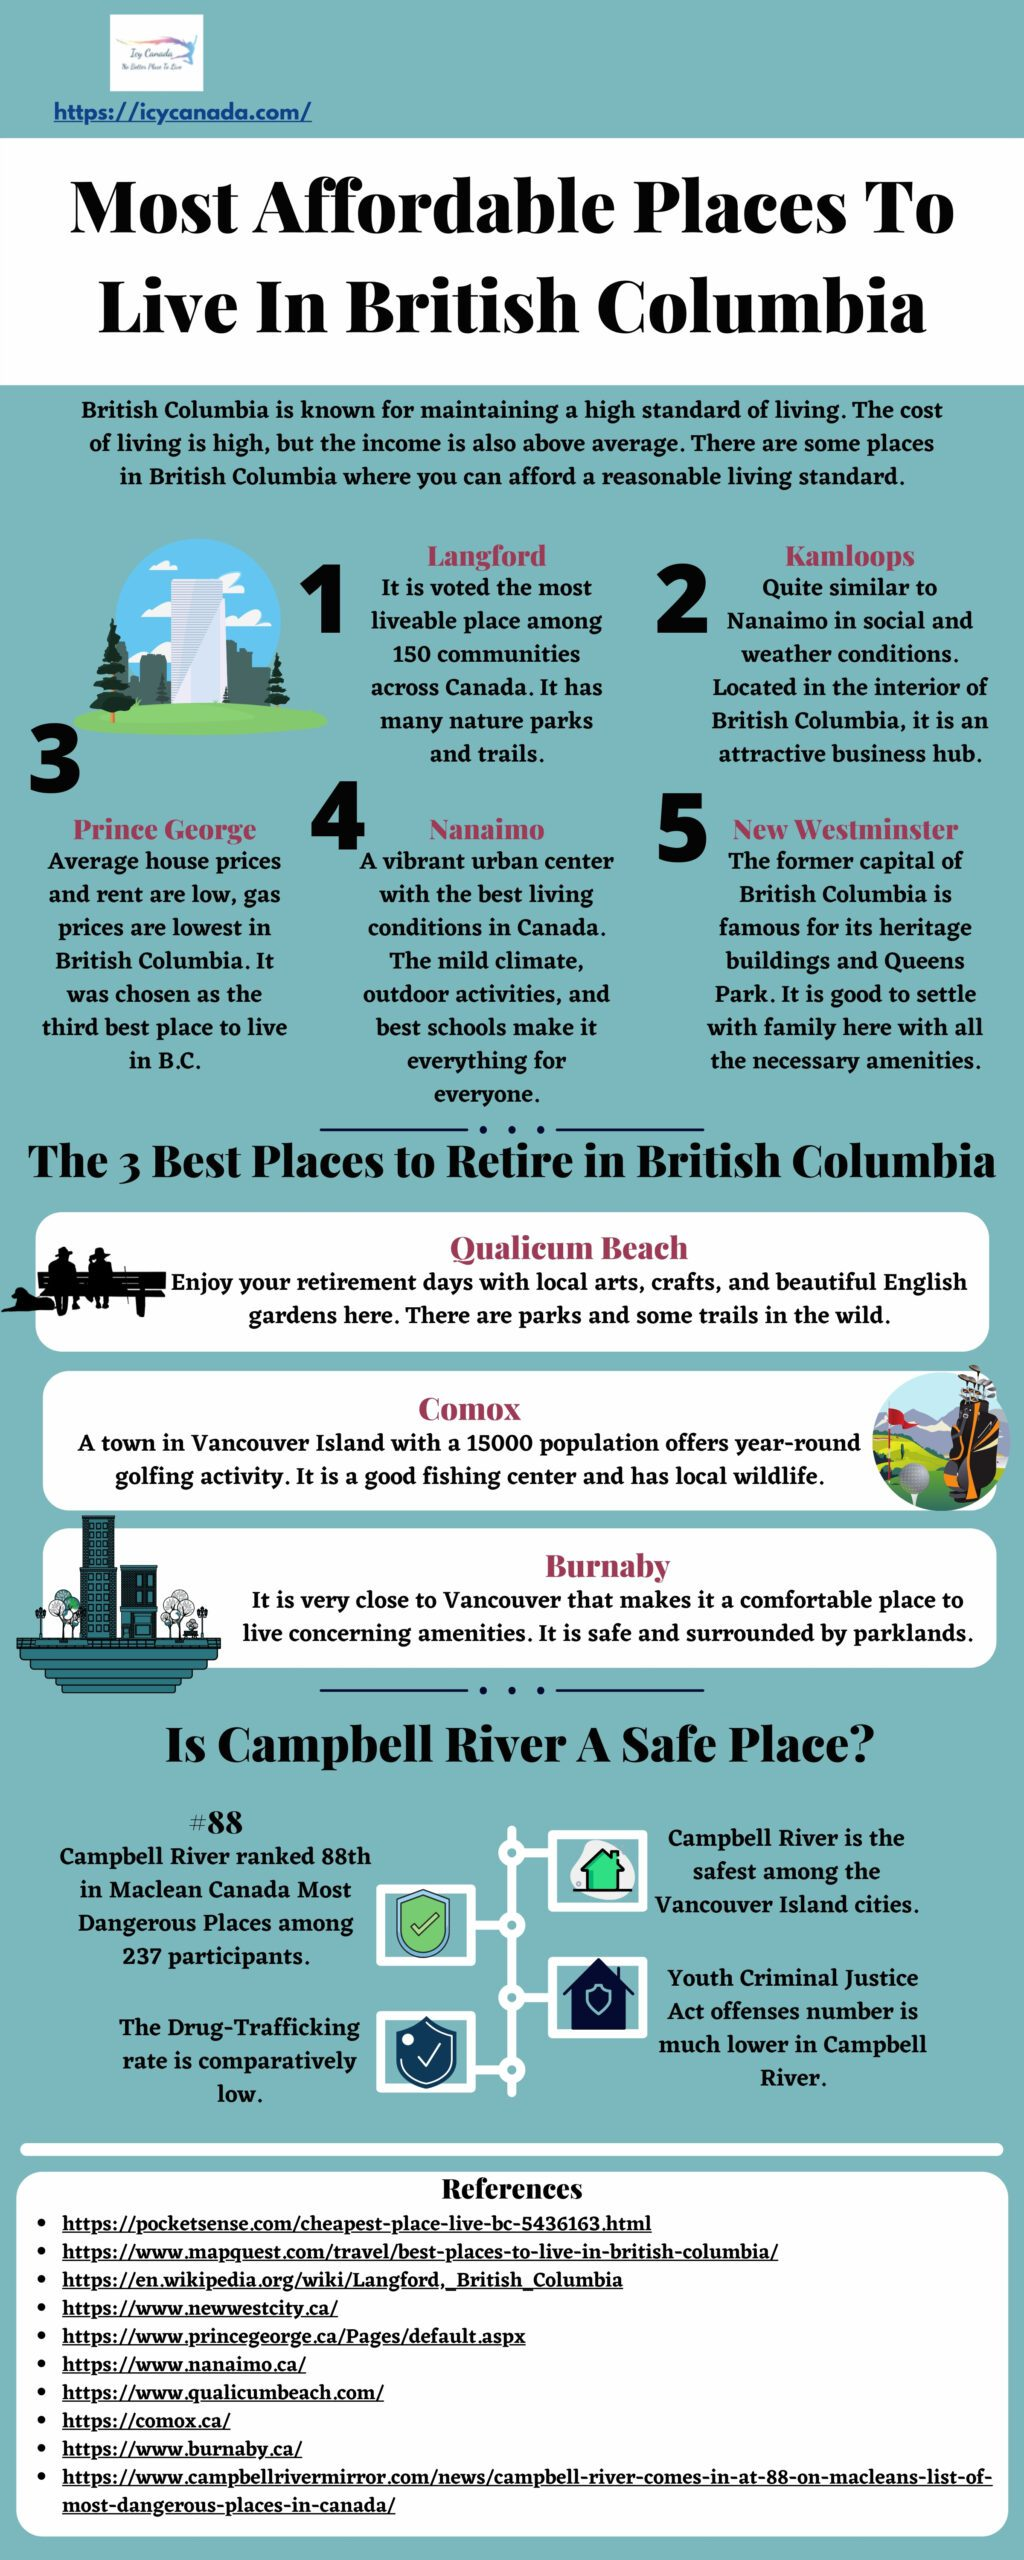 Most Affordable Places To Live In British Columbia